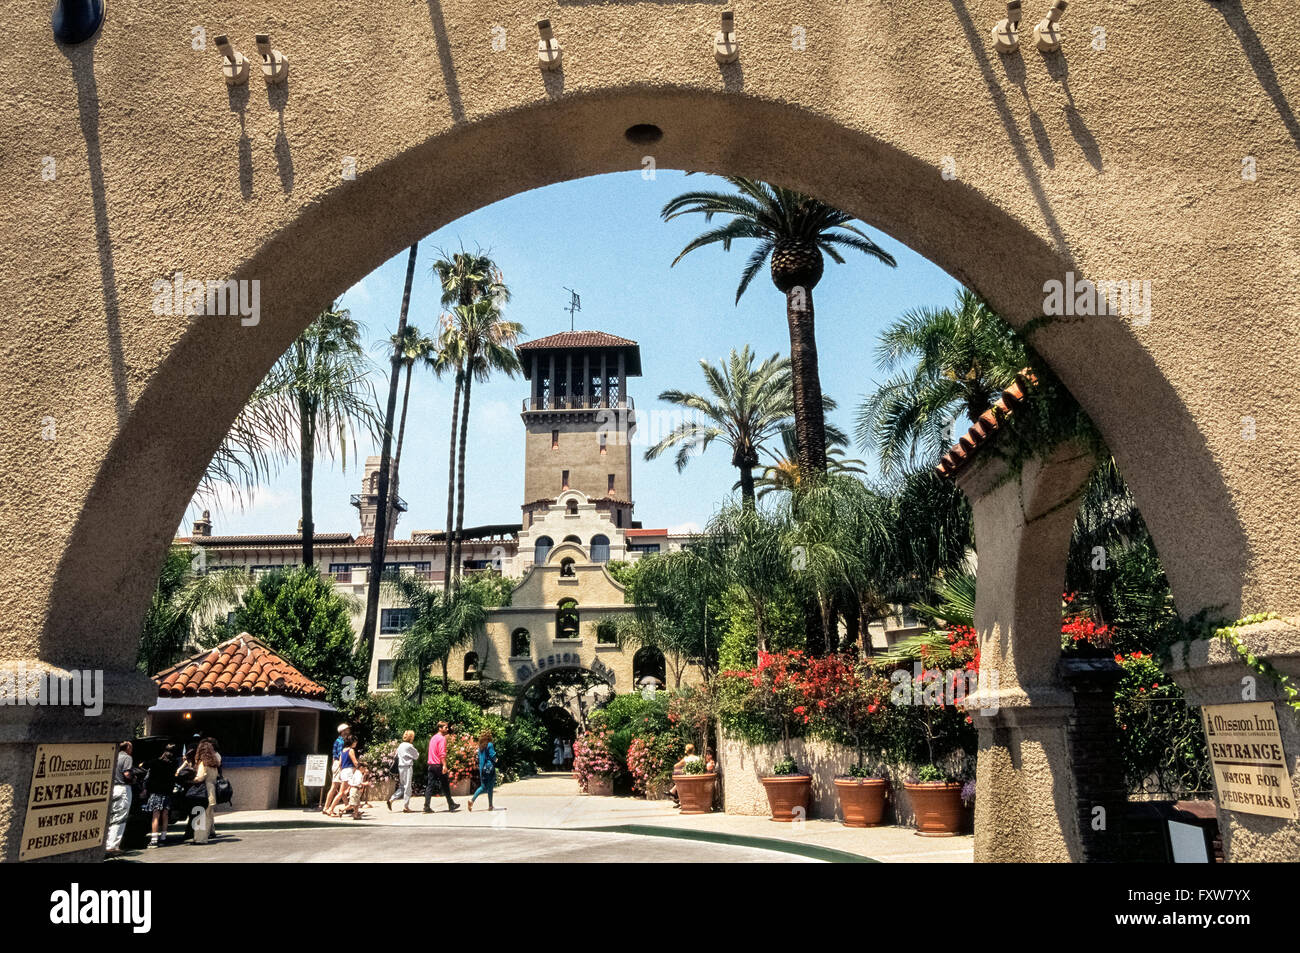 Hotel guests and visitors head to the entrance of the historic Mission Inn that has long attracted U.S. Presidents, - Stock Image